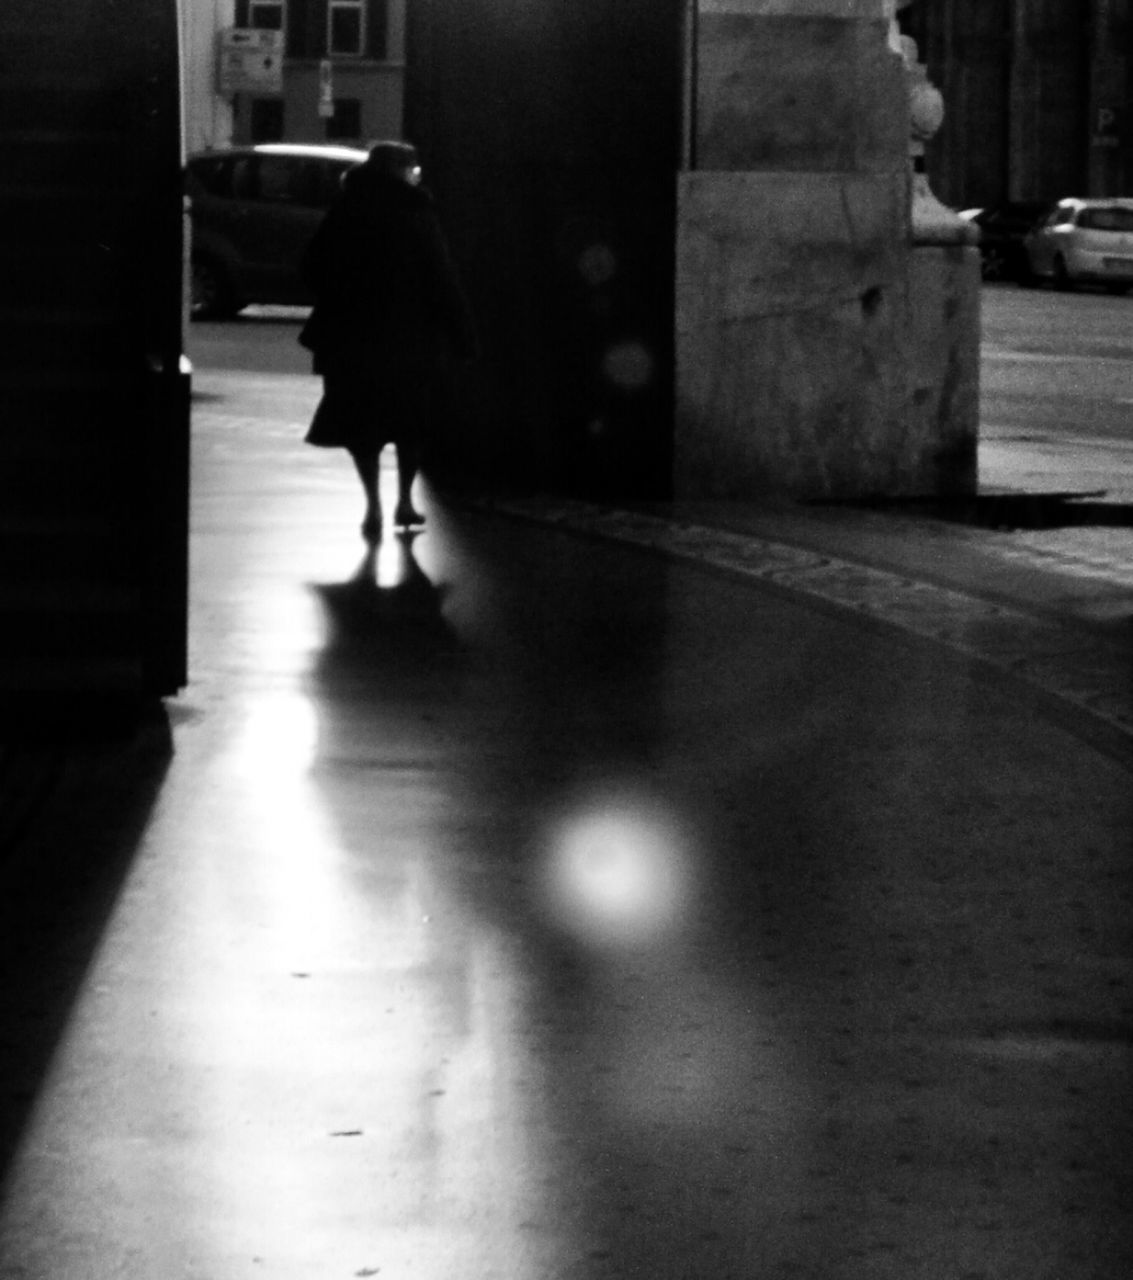 walking, one person, real people, full length, women, rear view, indoors, lifestyles, day, architecture, adult, people